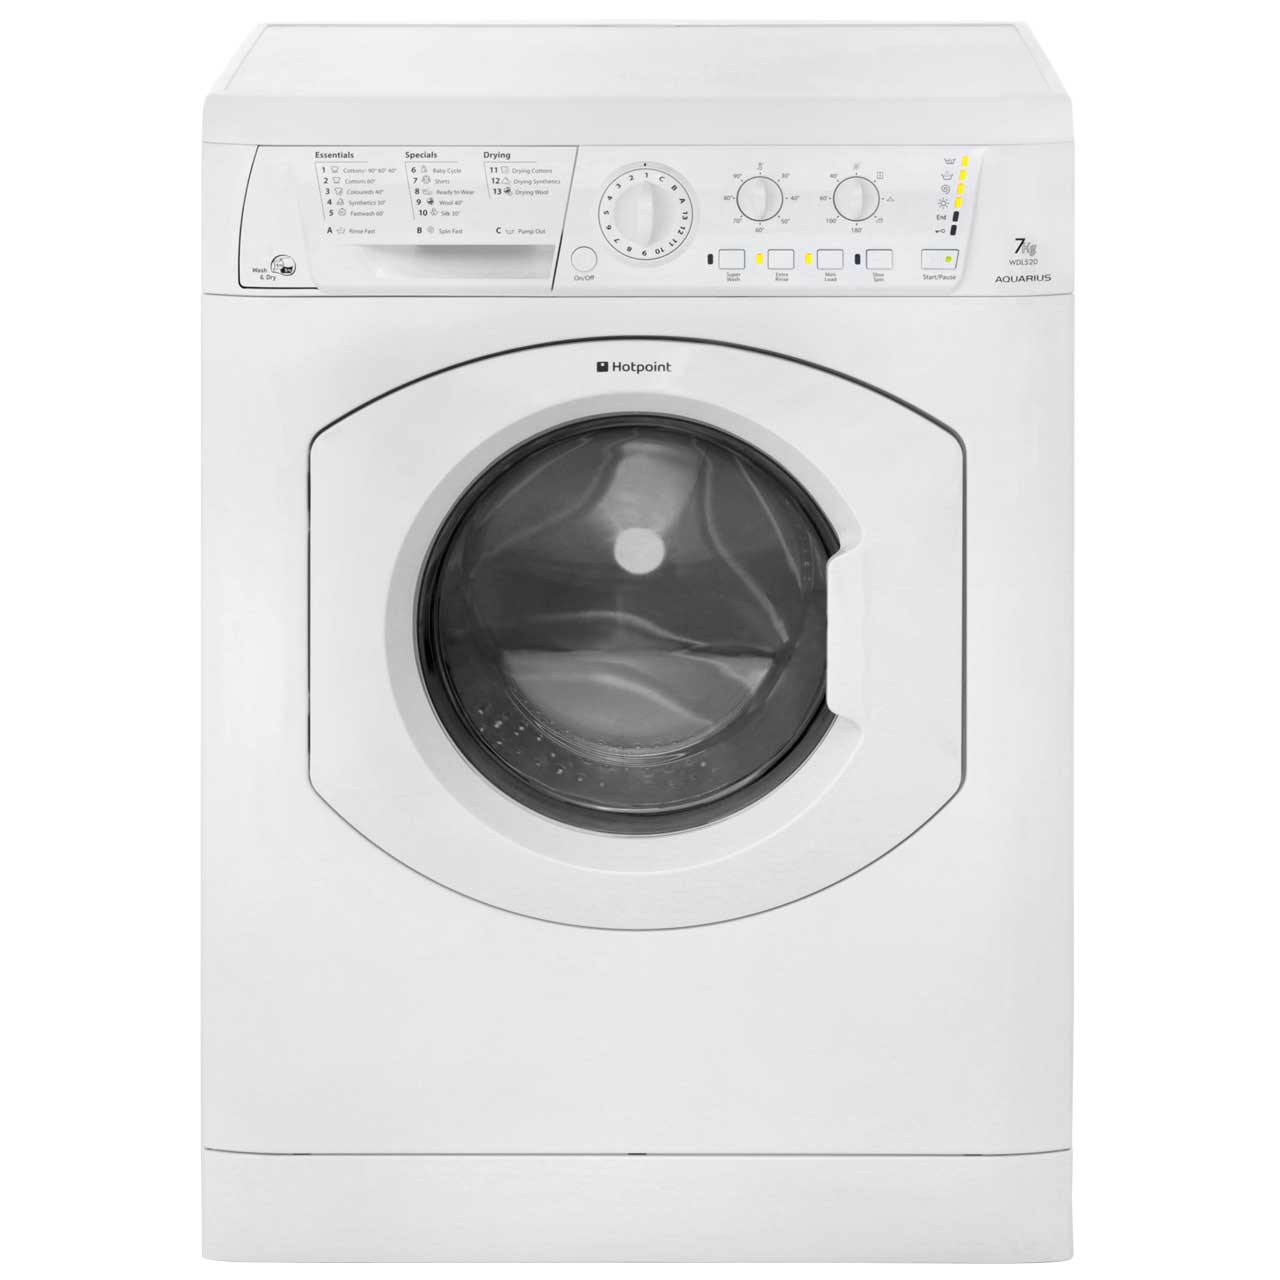 Hotpoint Washer Dryer Combo Hotpoint Aquarius Wdl520p 7kg 5kg Washer Dryer With 1200 Rpm